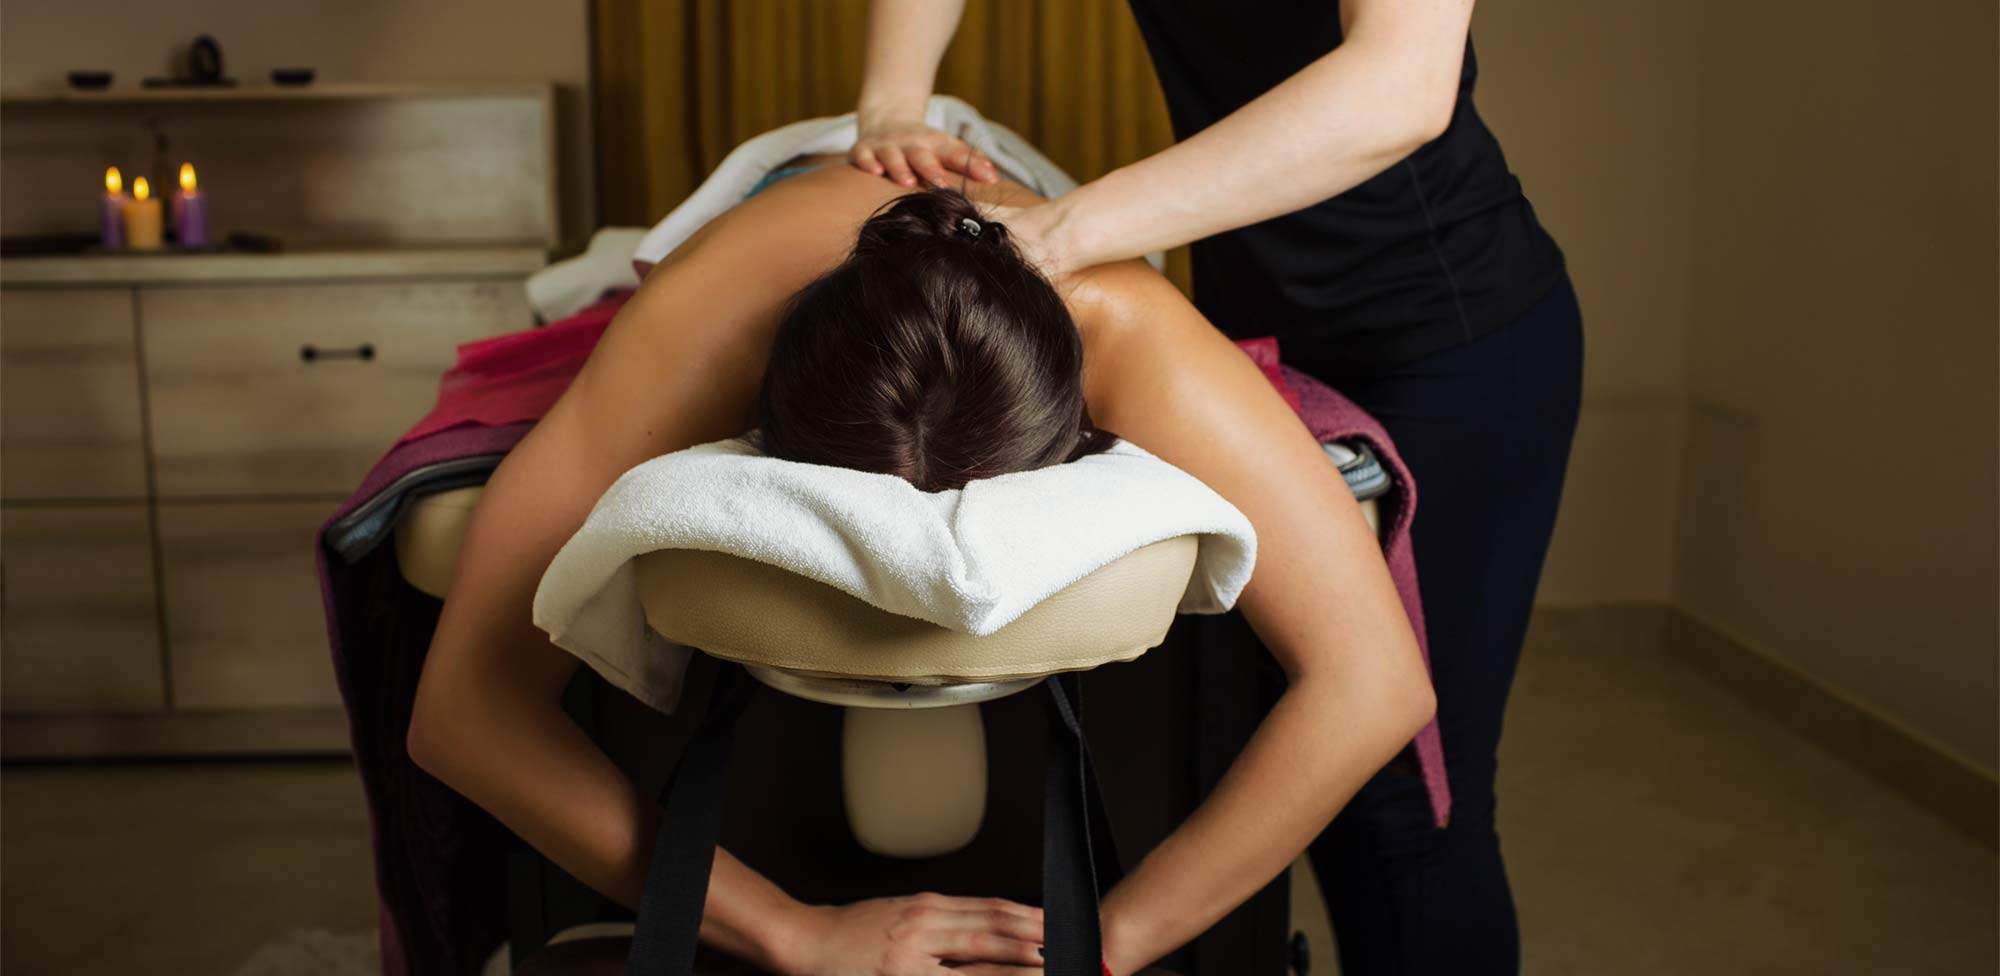 Massage-Table-What-Expect.jpg